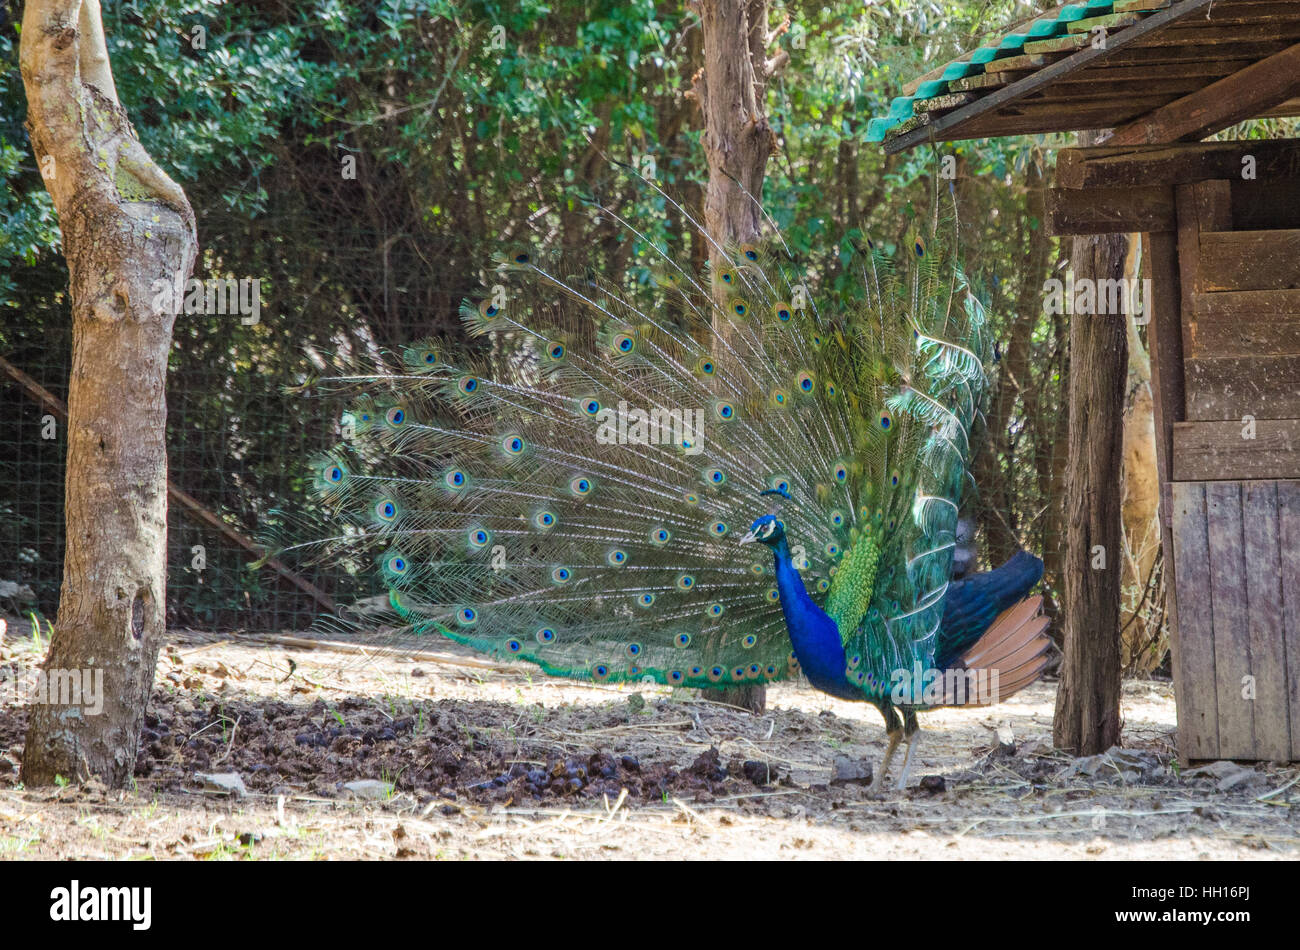 Peacock in the zoo - Stock Image